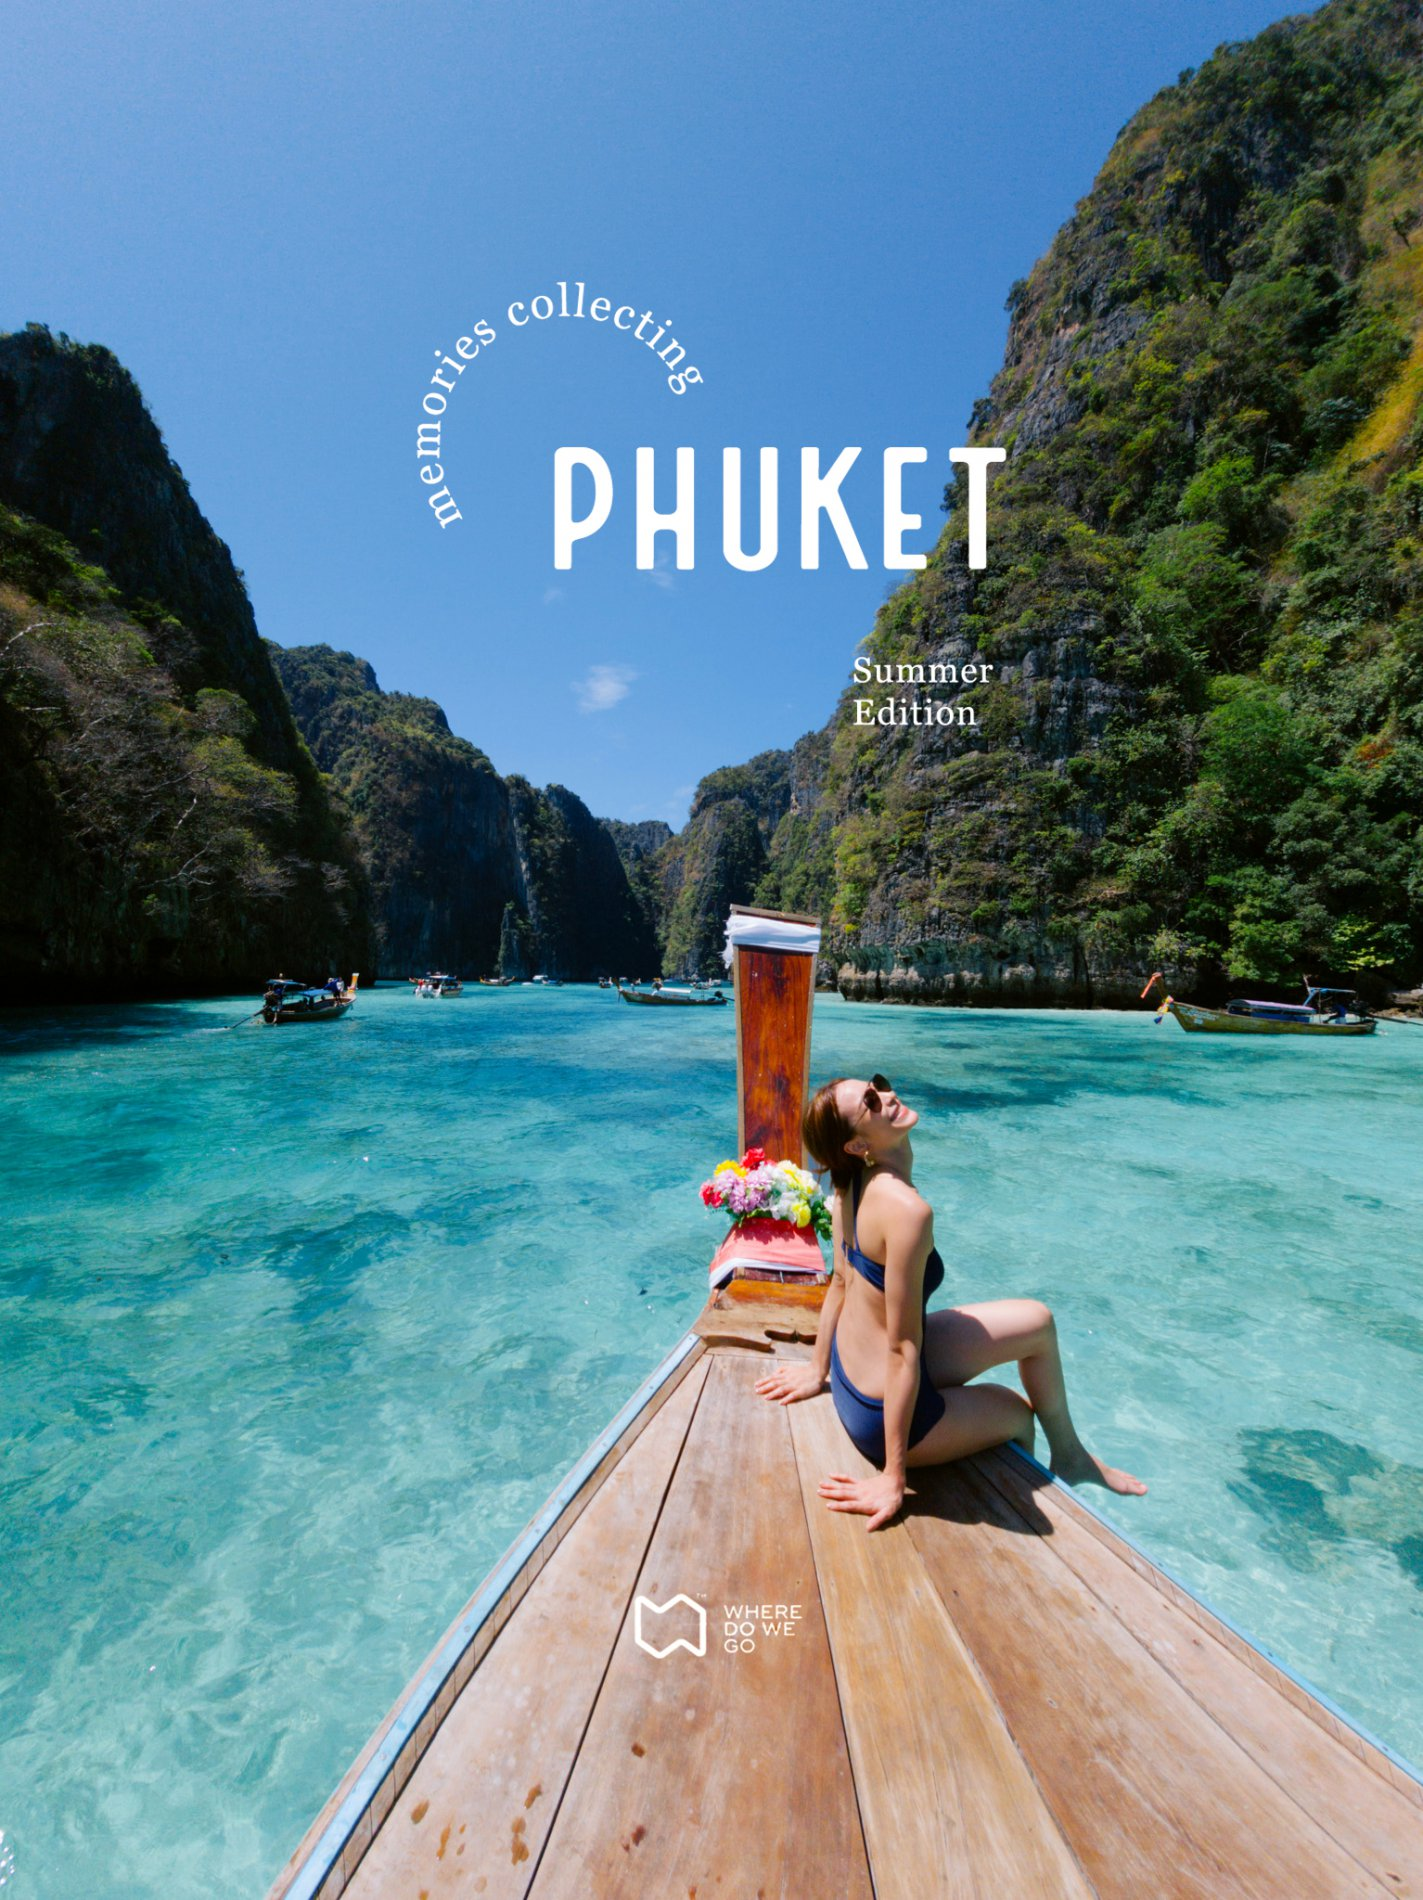 Memories Collecting in PHUKET with Galaxy S21